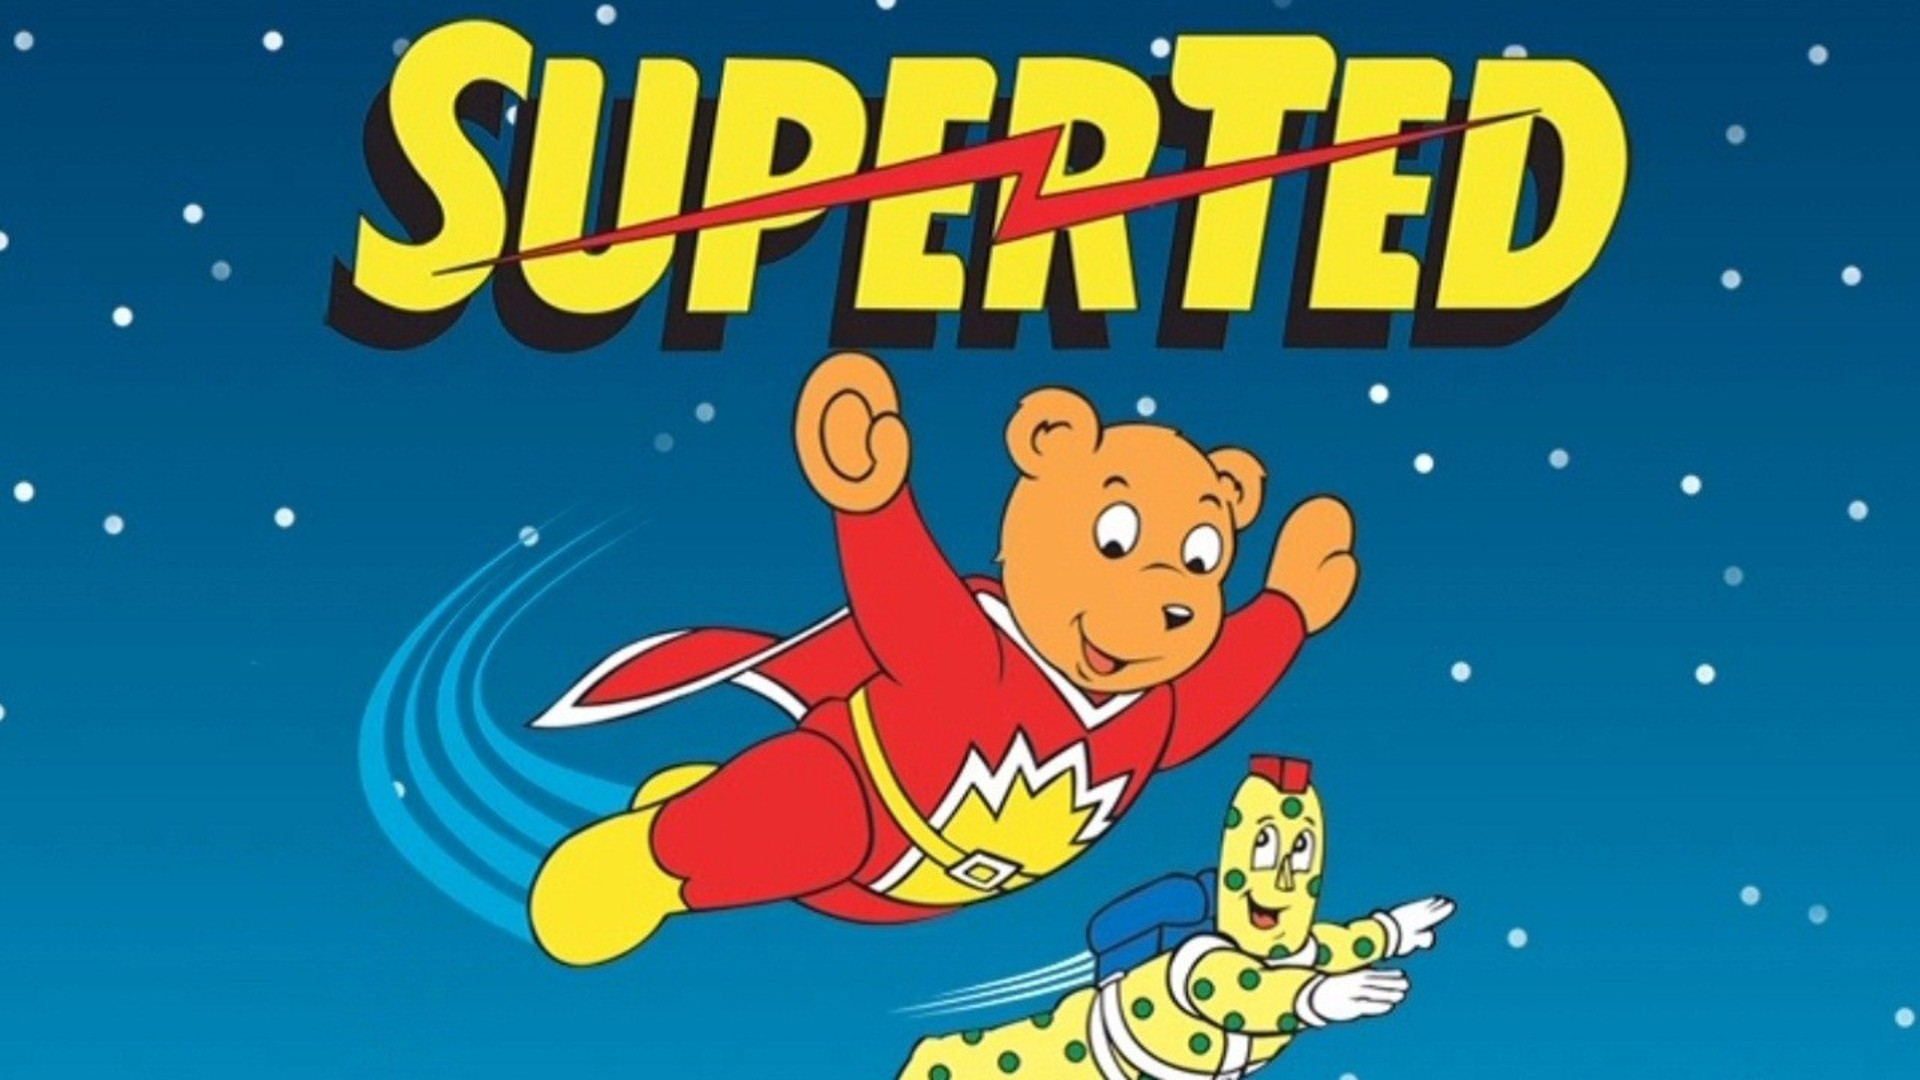 Animated Bear Wallpaper Superted Animated Series Reportedly Being Revived